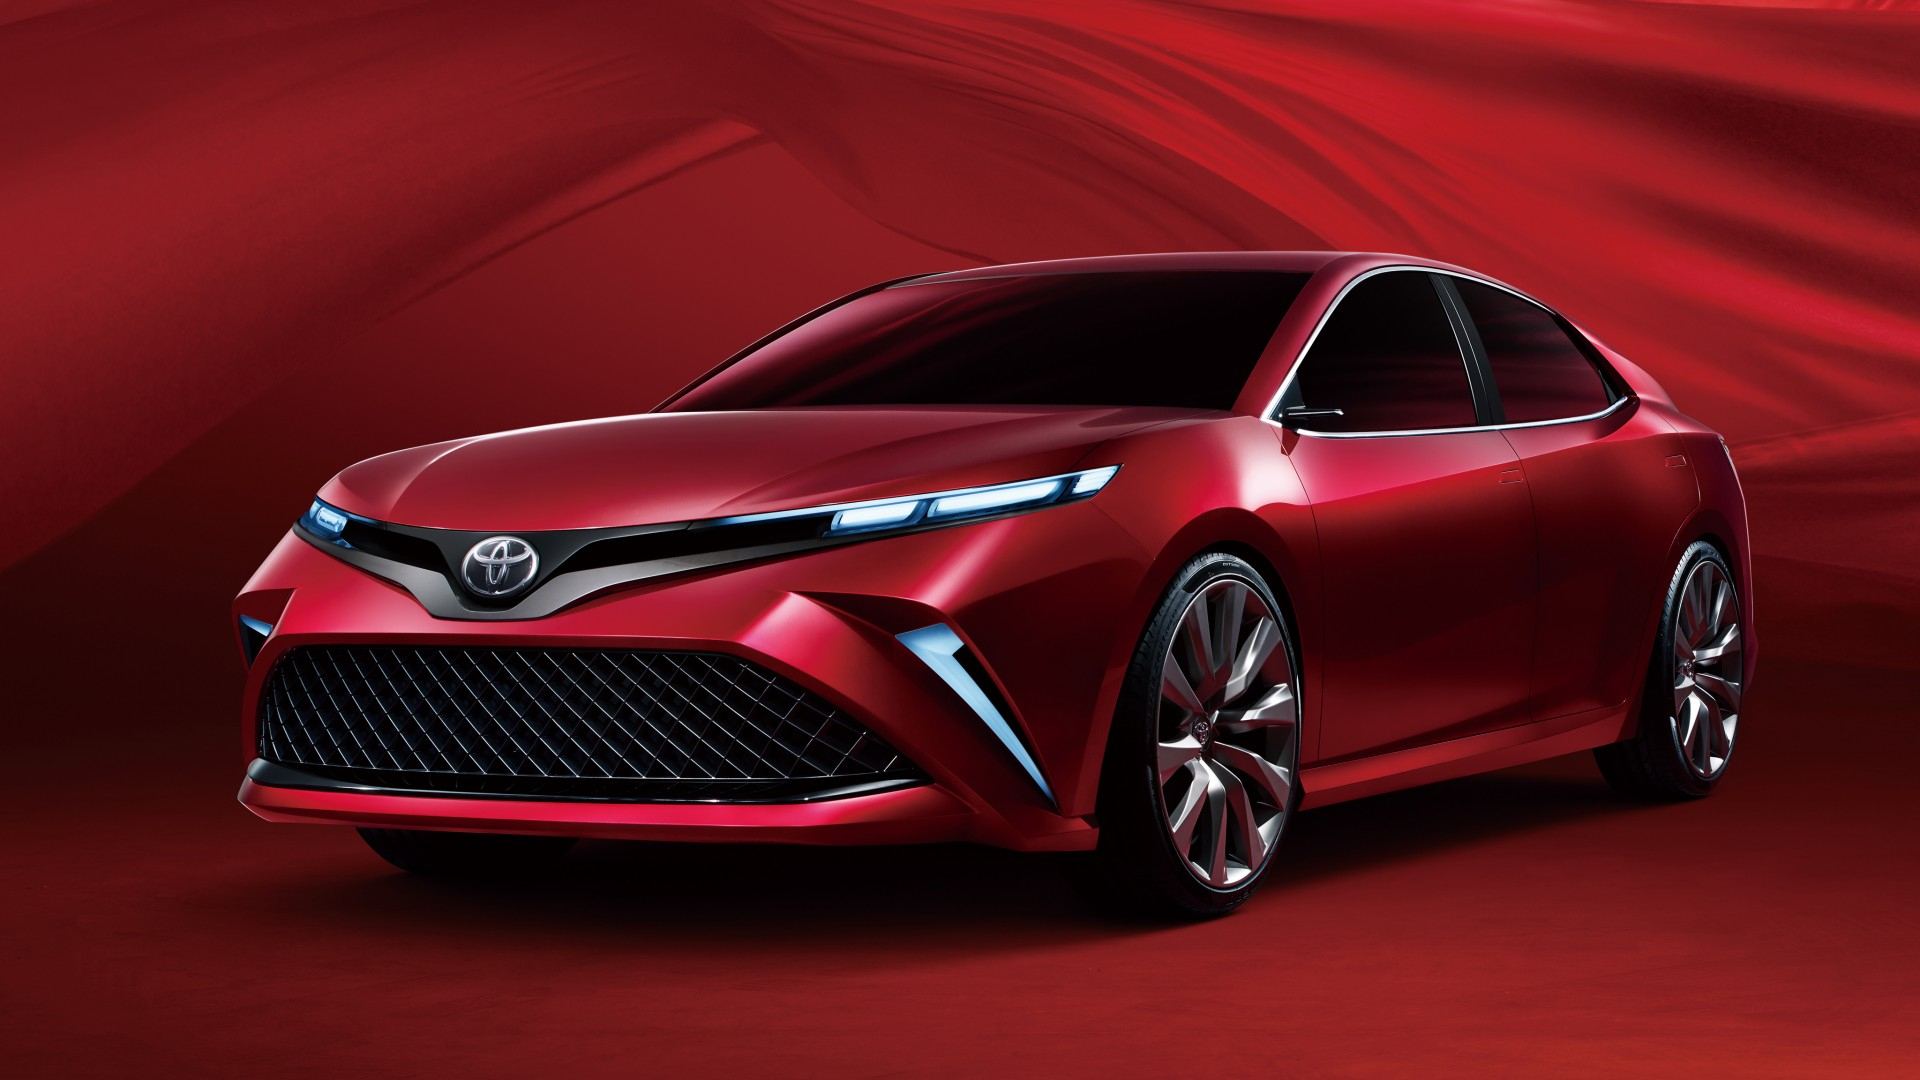 2017 Toyota Camry 4K Wallpaper HD Car Wallpapers ID 7747